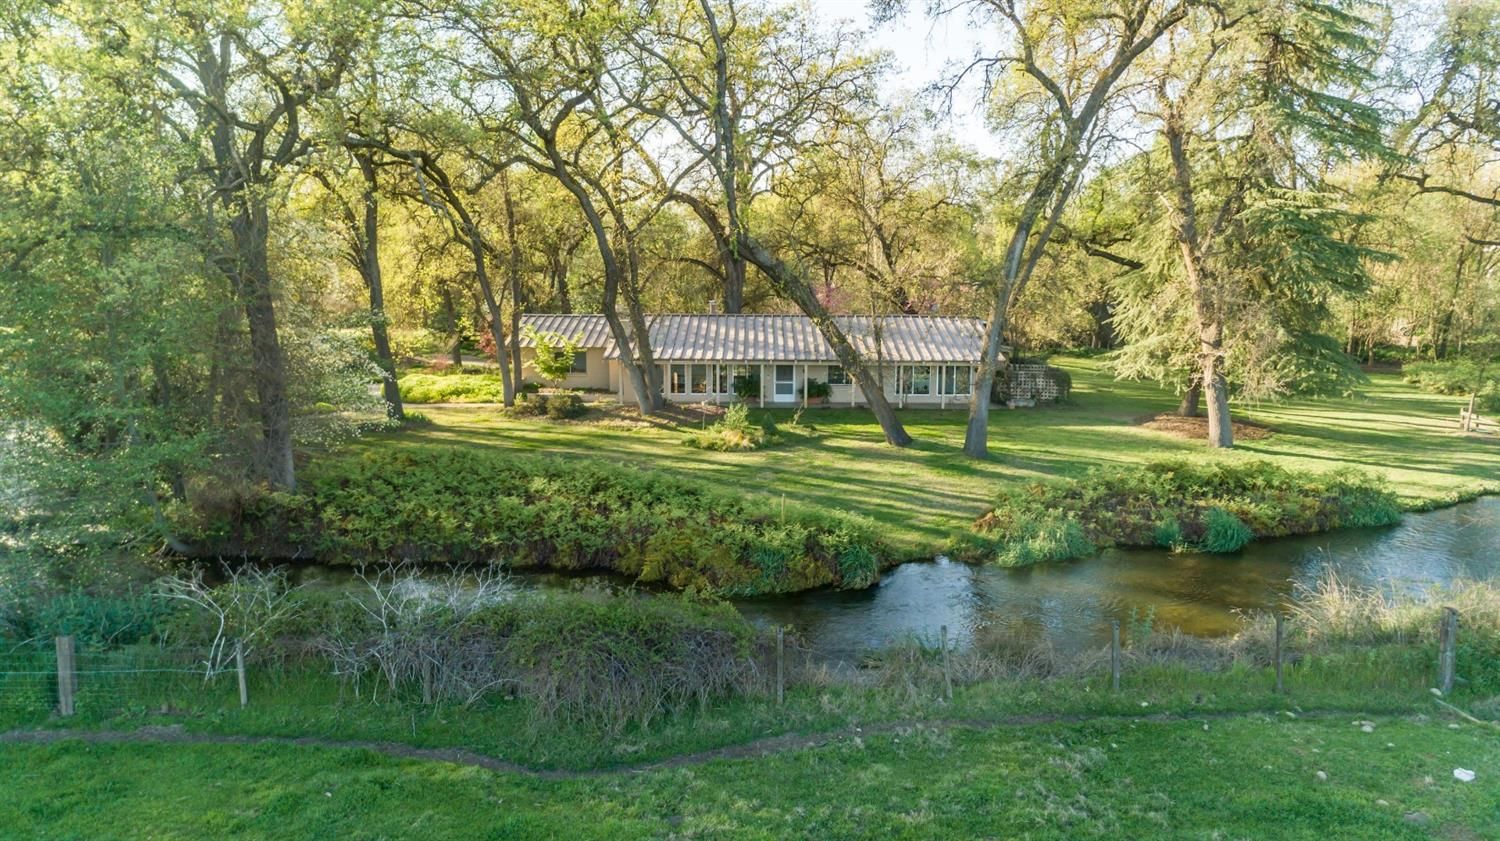 An exceptionally rare opportunity to own 13.85 acres along the King's River! The land offers  stunning views of the river & Sierra Nevada mts, grand oak trees, cottonwood trees & other  varieties, pasture or farmland, barn, raised flower beds w/ lettuce & strawberries, variety of  fruit trees & wildlife. The cozy 1,890 sq ft home showcases the land with large windows &  vaulted ceiling. Imagine opening your windows to hear the river flowing & birds chirping while  soaking in the sights. It's truly an outdoor sanctuary with limitless potential.